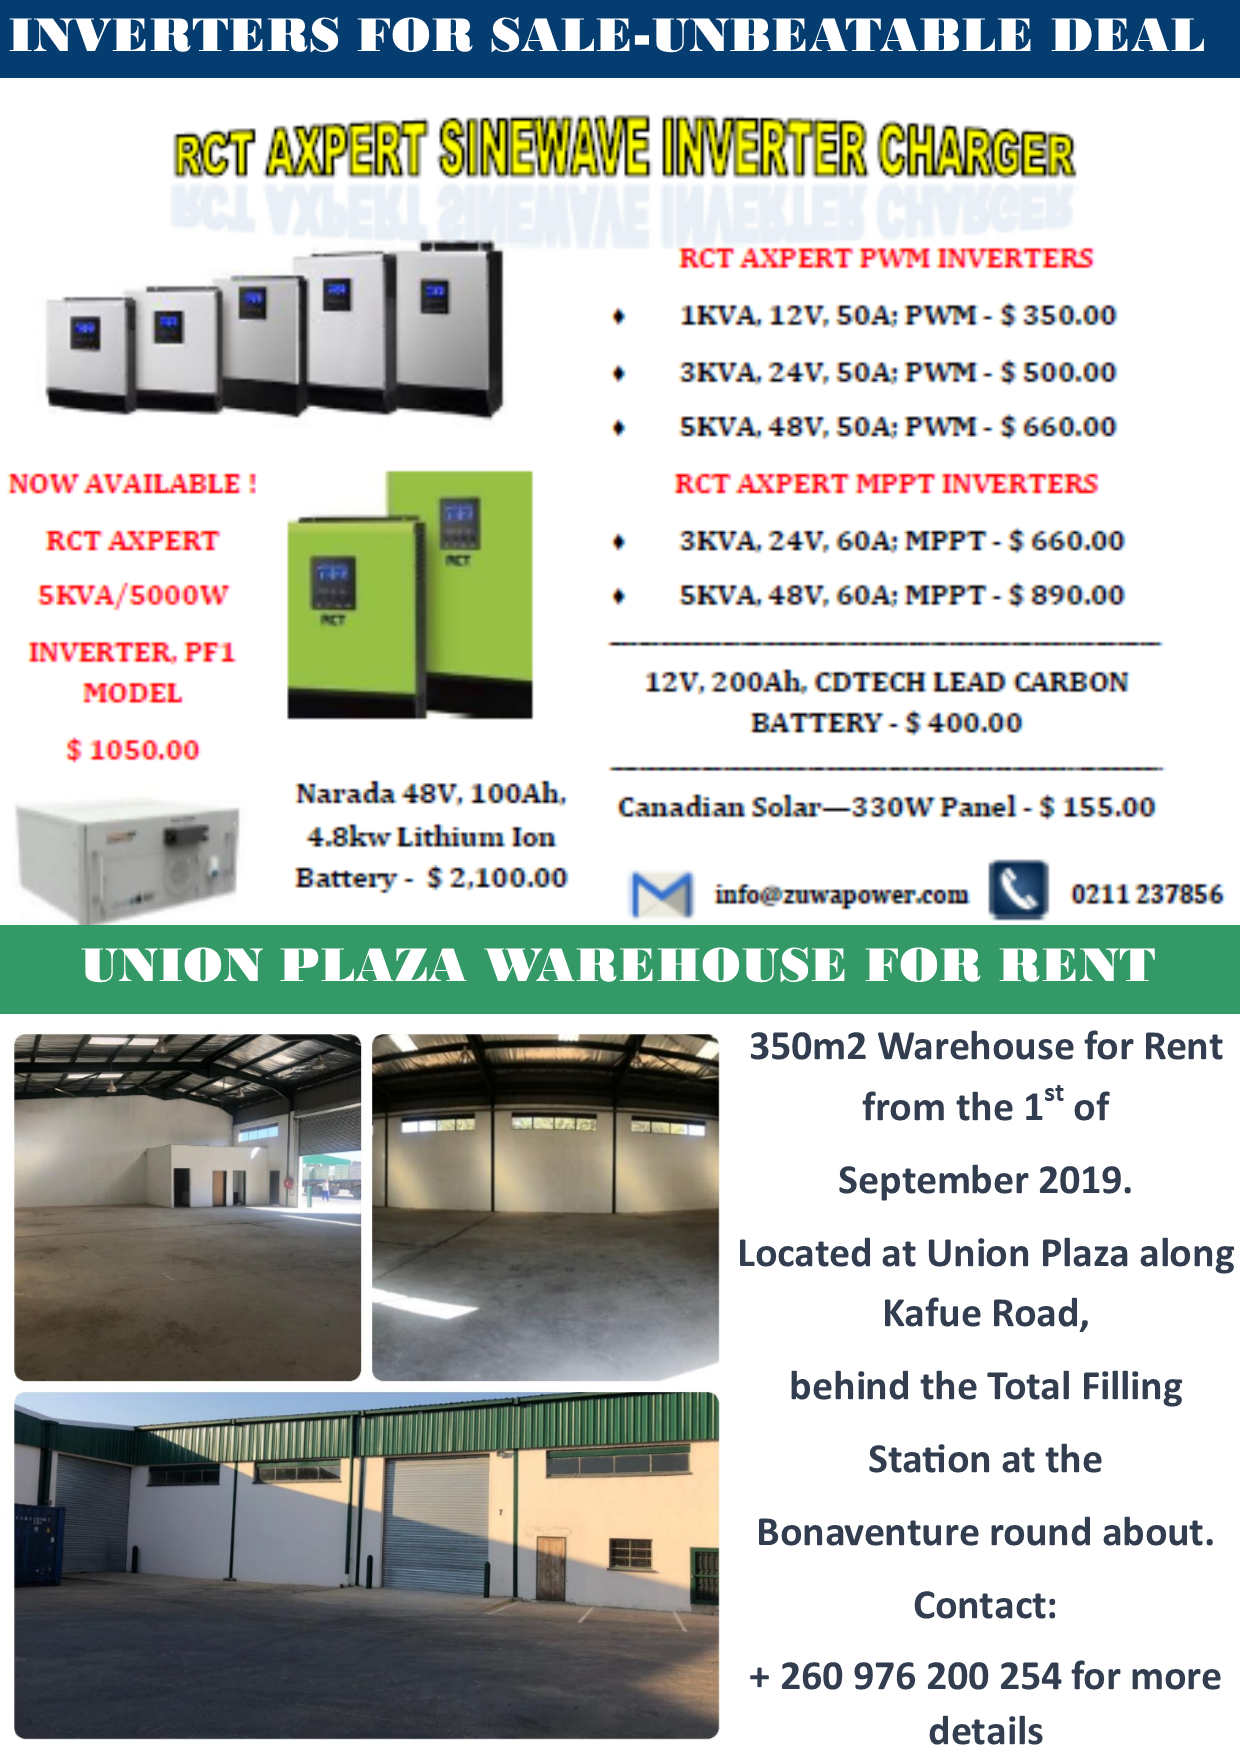 Inverters For Sale >> 18 11 19 Inverters For Sale Union Plaza Warehouse For